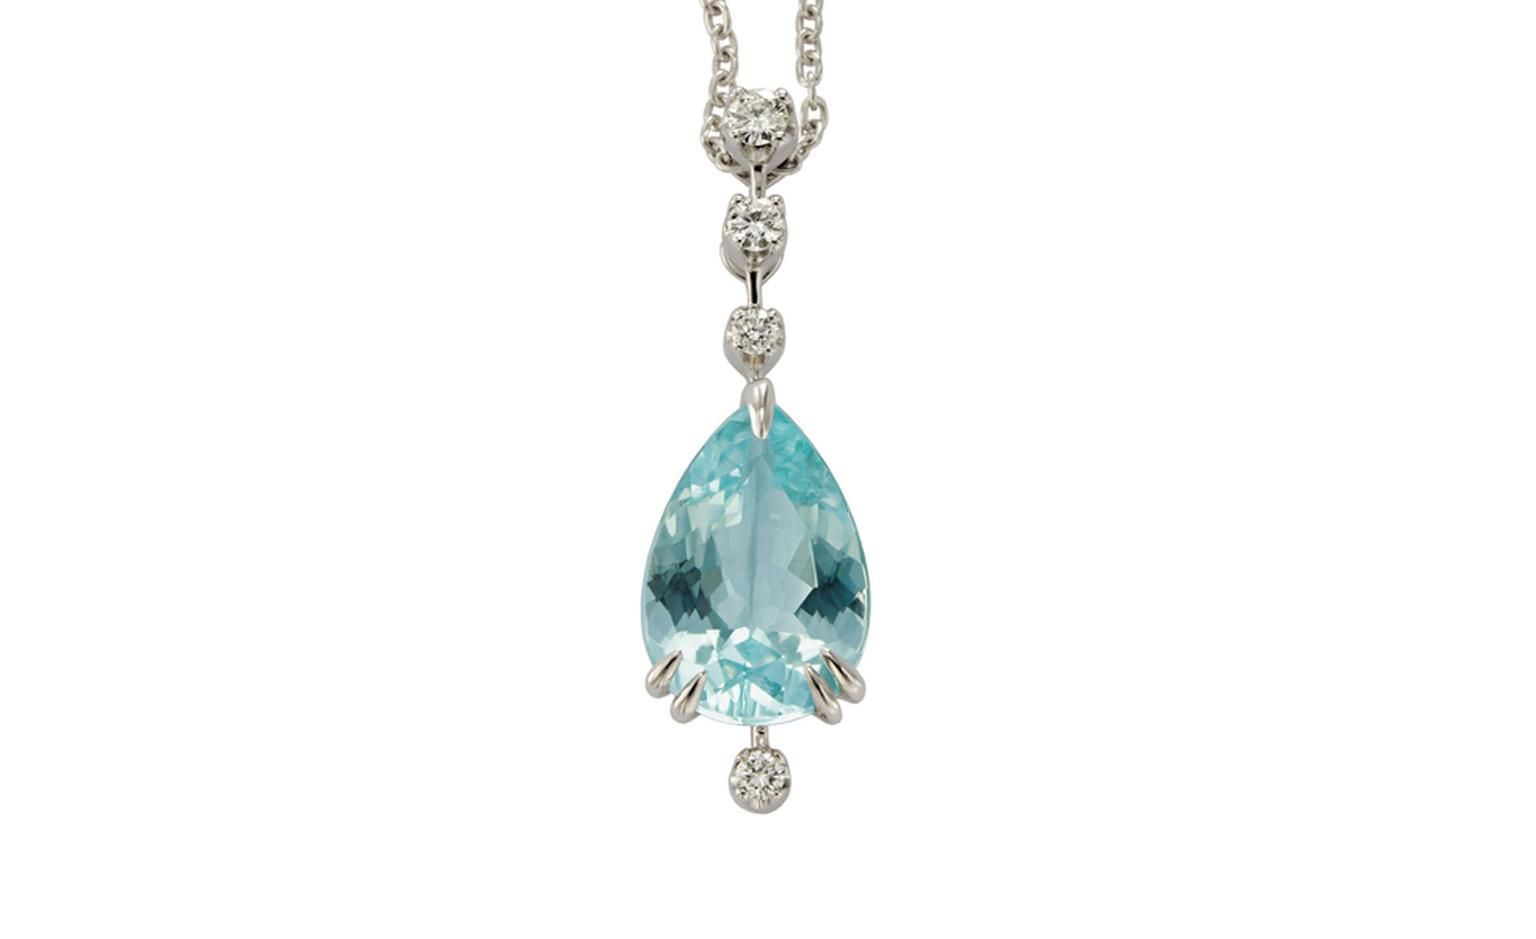 Hern tempts with exquisite paraiba tourmalines harrods jewel hern tempts with exquisite paraiba tourmalines aloadofball Image collections